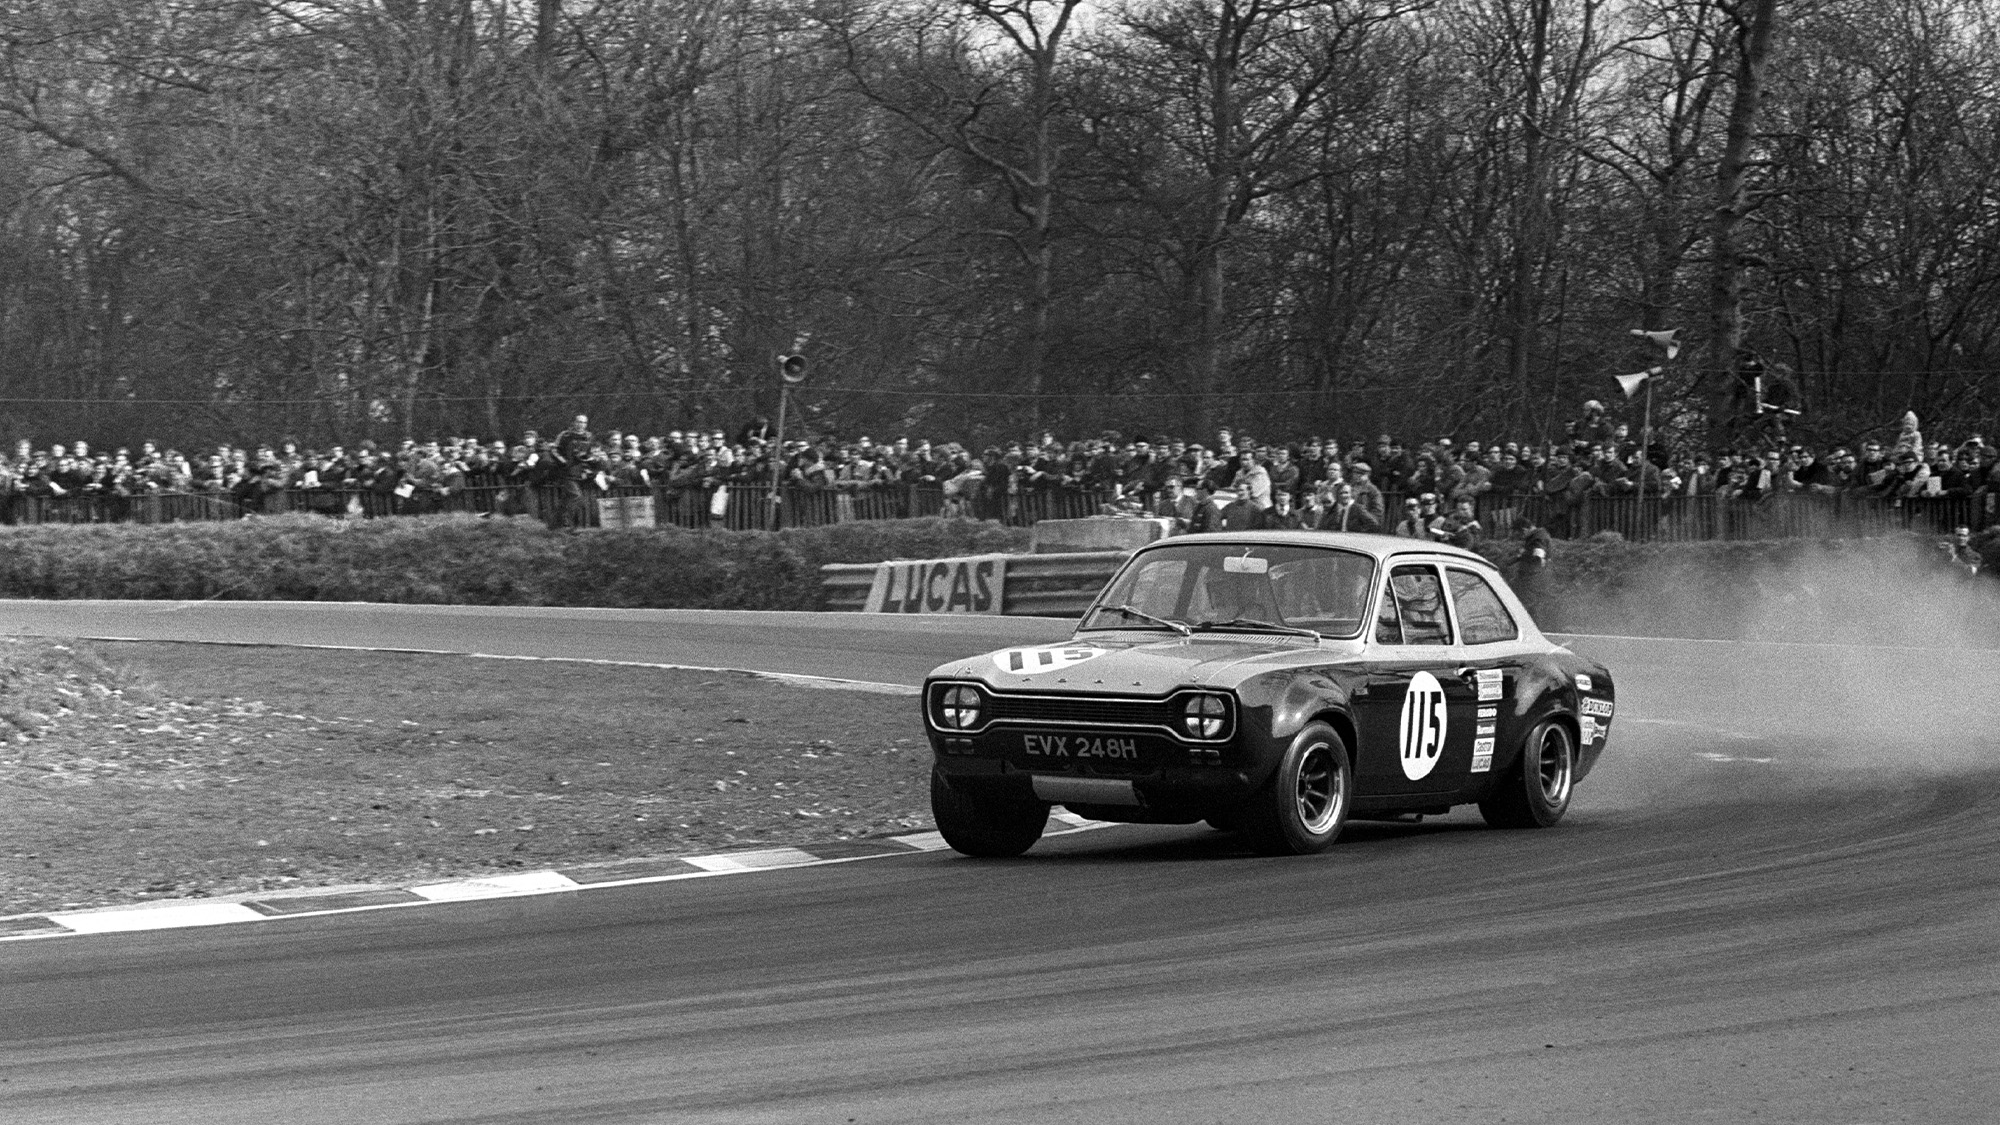 Chris Craft in a Ford Escort at the Guards Trophy Race at Brands Hatch 1970